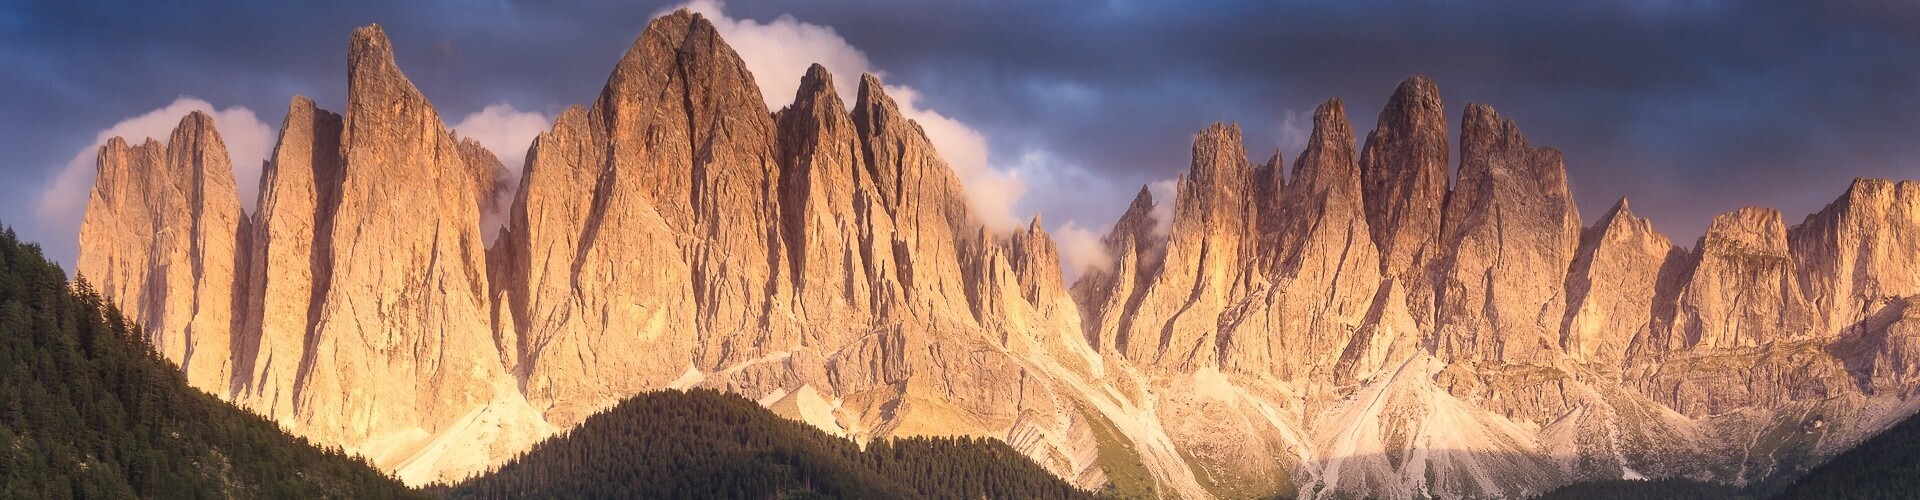 voyage photo dolomites aliaume chapelle header